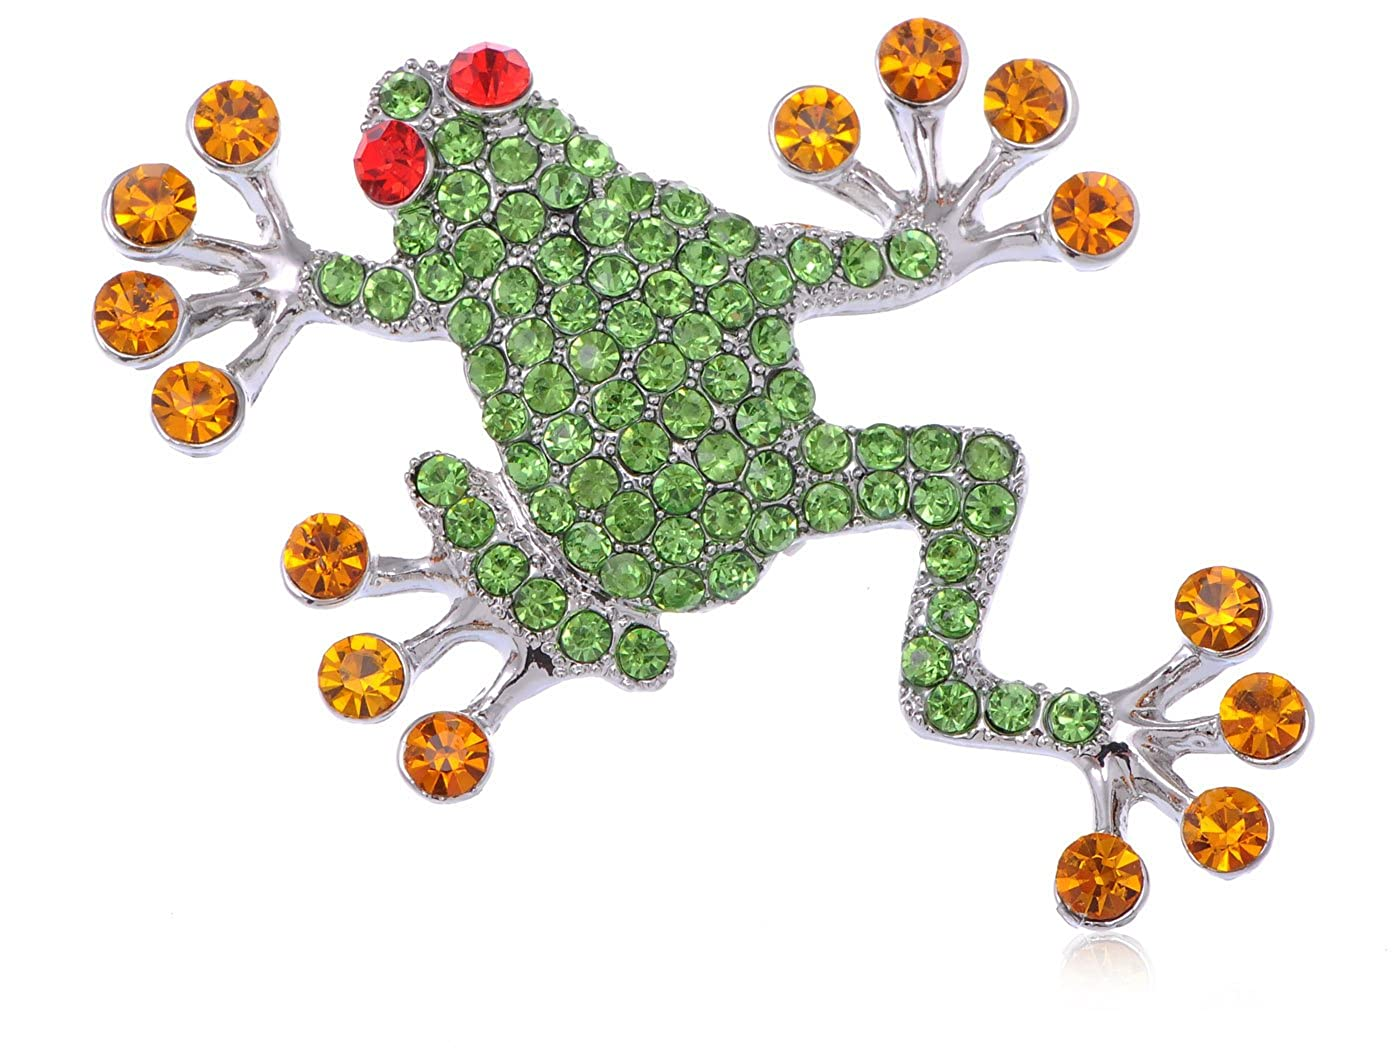 Vintage Style Jewelry, Retro Jewelry Alilang Synthetic Peridot Crystal Rhinestone Synthetic Ruby Eyed Frog Fashion Jewelry Brooch Pin $8.99 AT vintagedancer.com